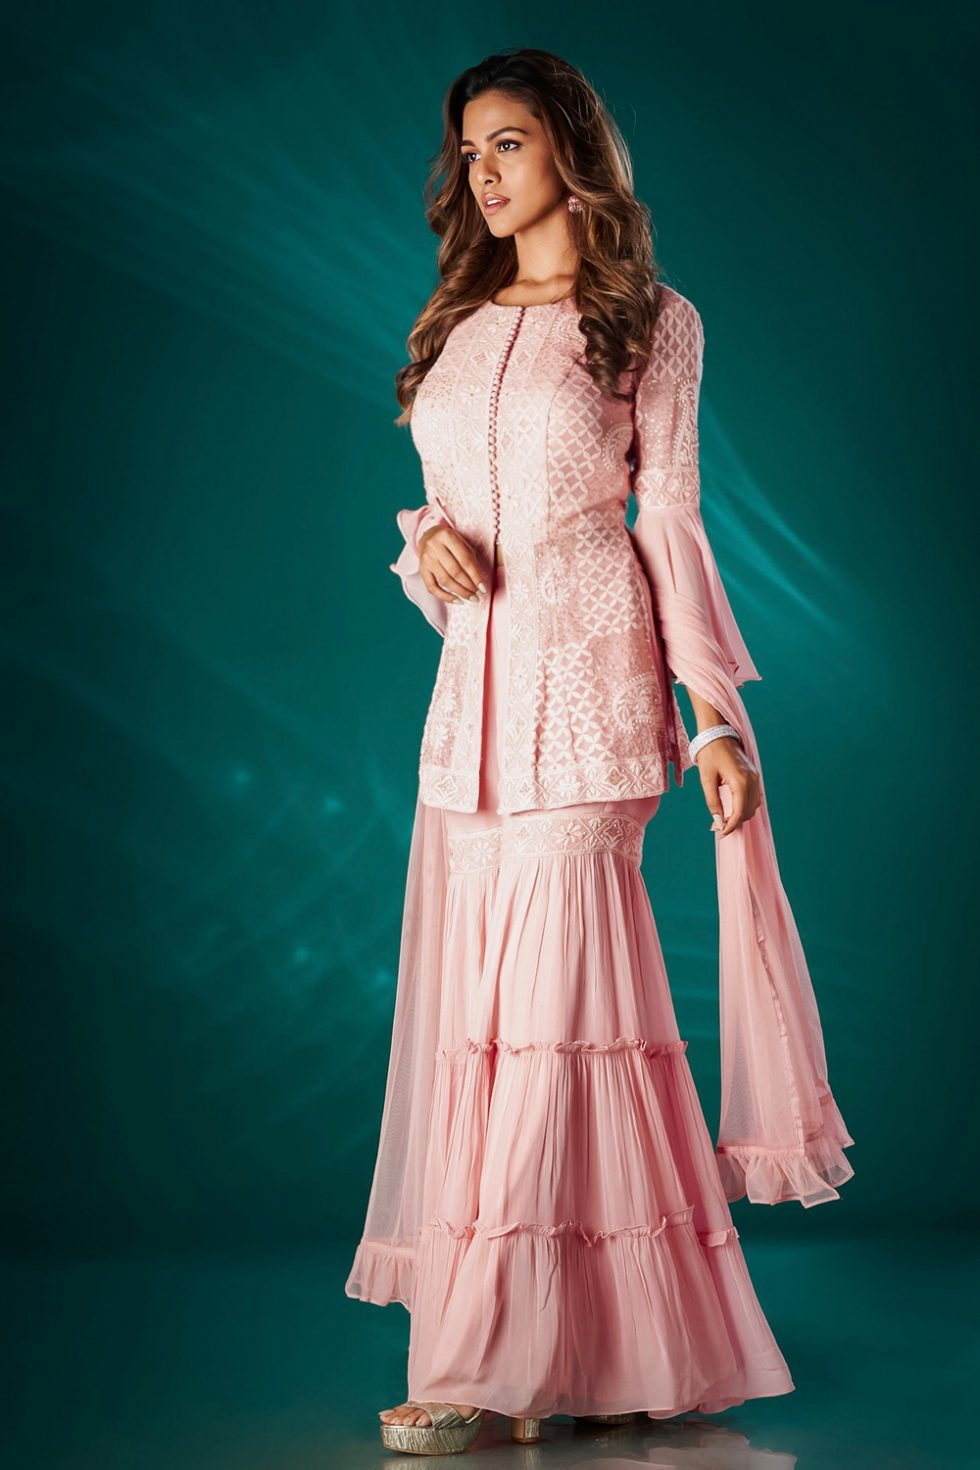 Petal pink tiered sharara pant set with a chikan jacket style top with bell sleeves paired with a matching dupatta.